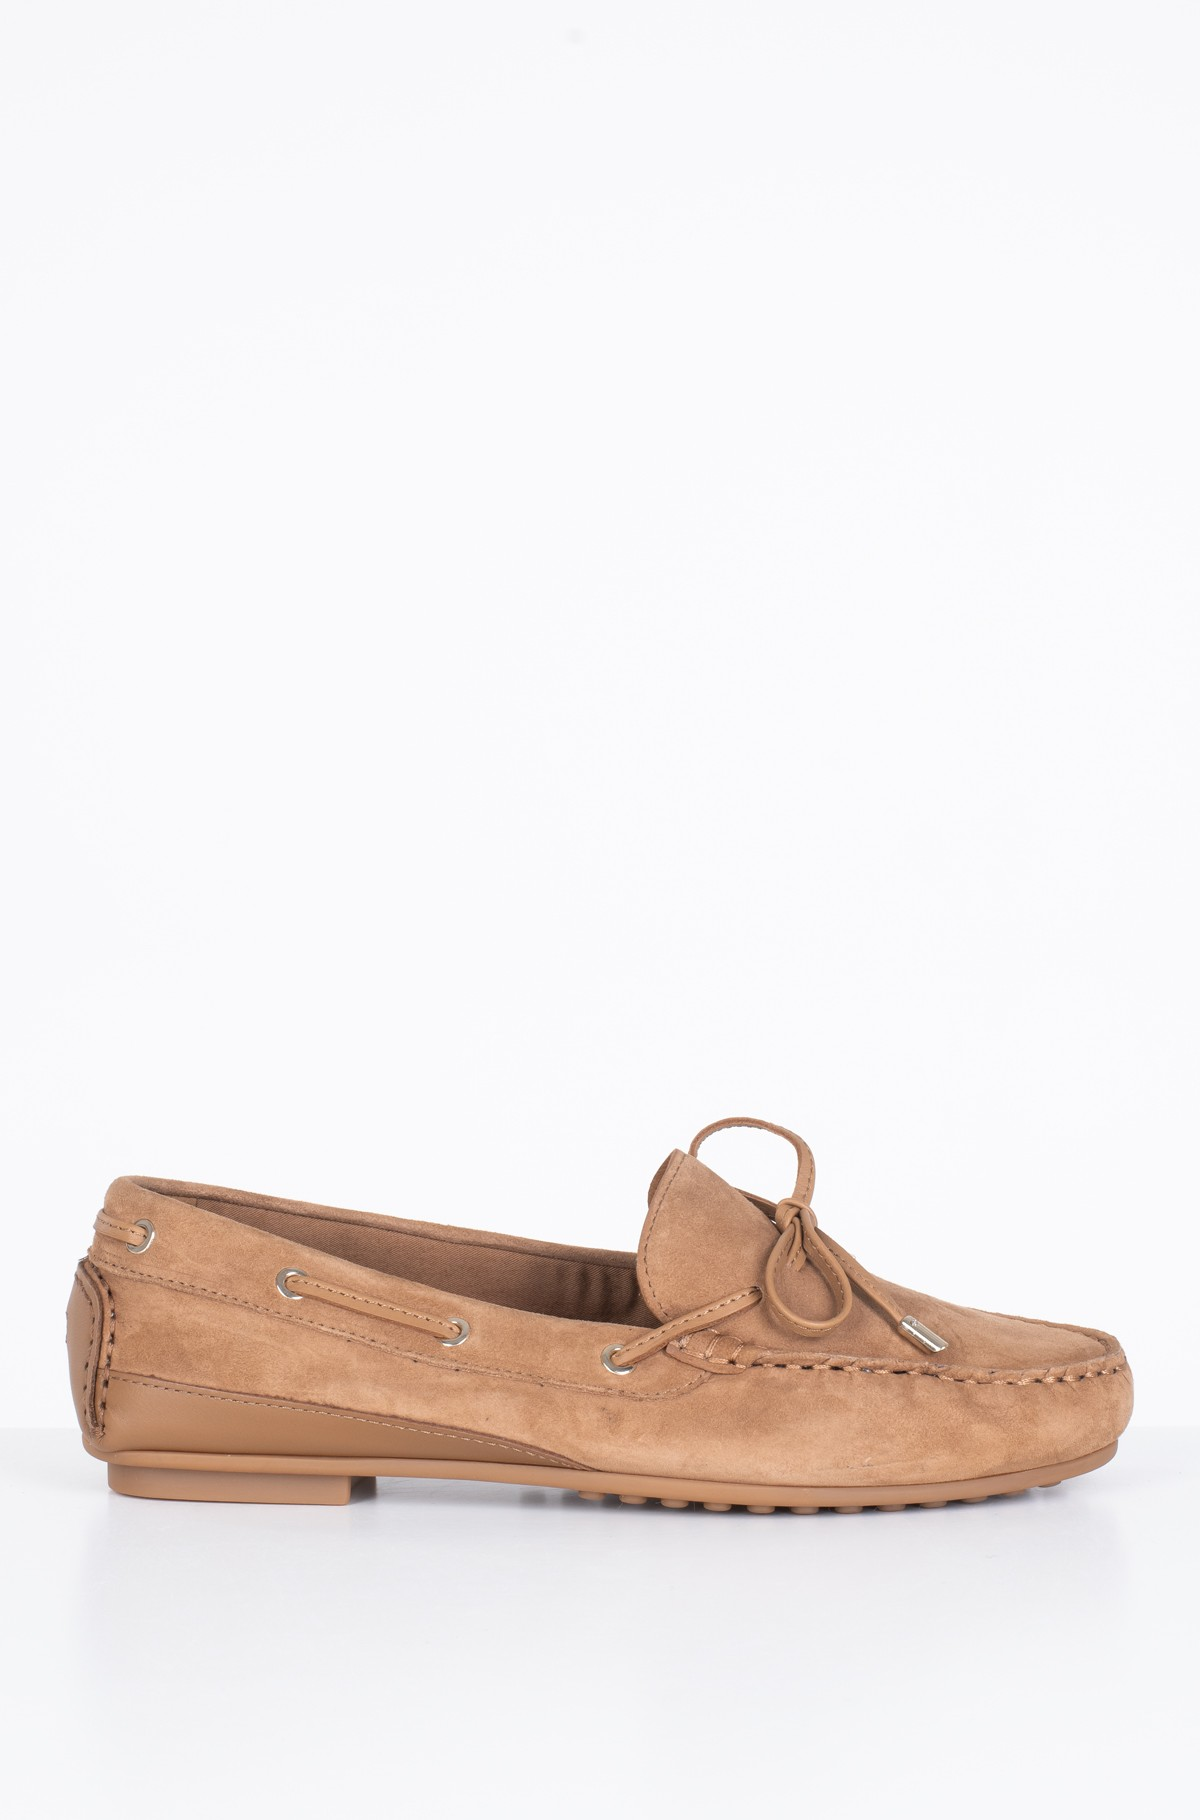 Mokasinai  ELEVATED TH HARDWARE MOCCASSIN-full-1